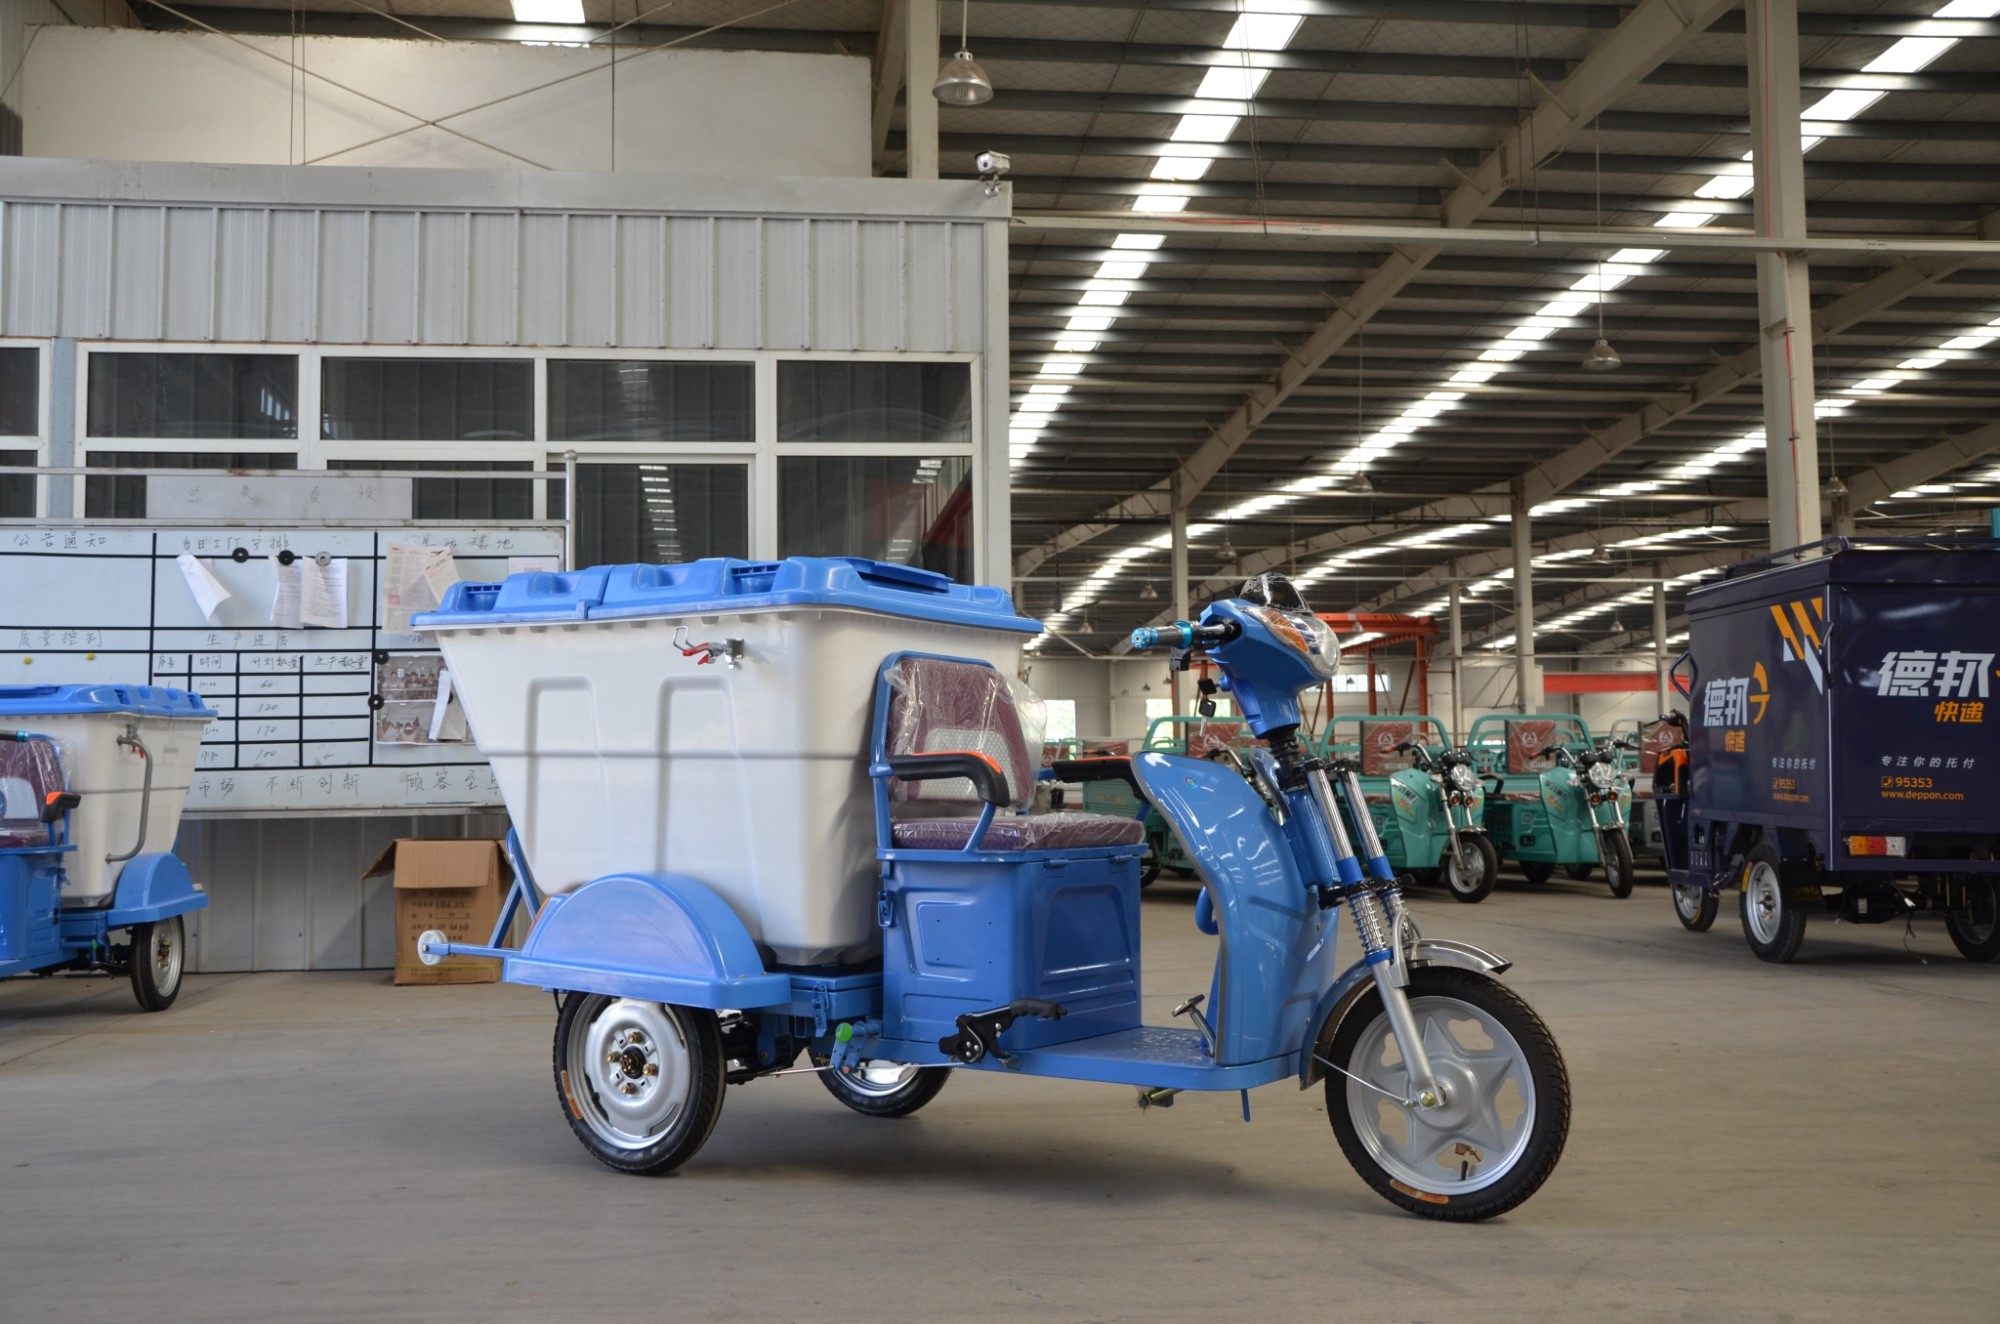 High quality Garbage 3 Wheels Electric Tricycle Quotes,China Garbage 3 Wheels Electric Tricycle Factory,Garbage 3 Wheels Electric Tricycle Purchasing